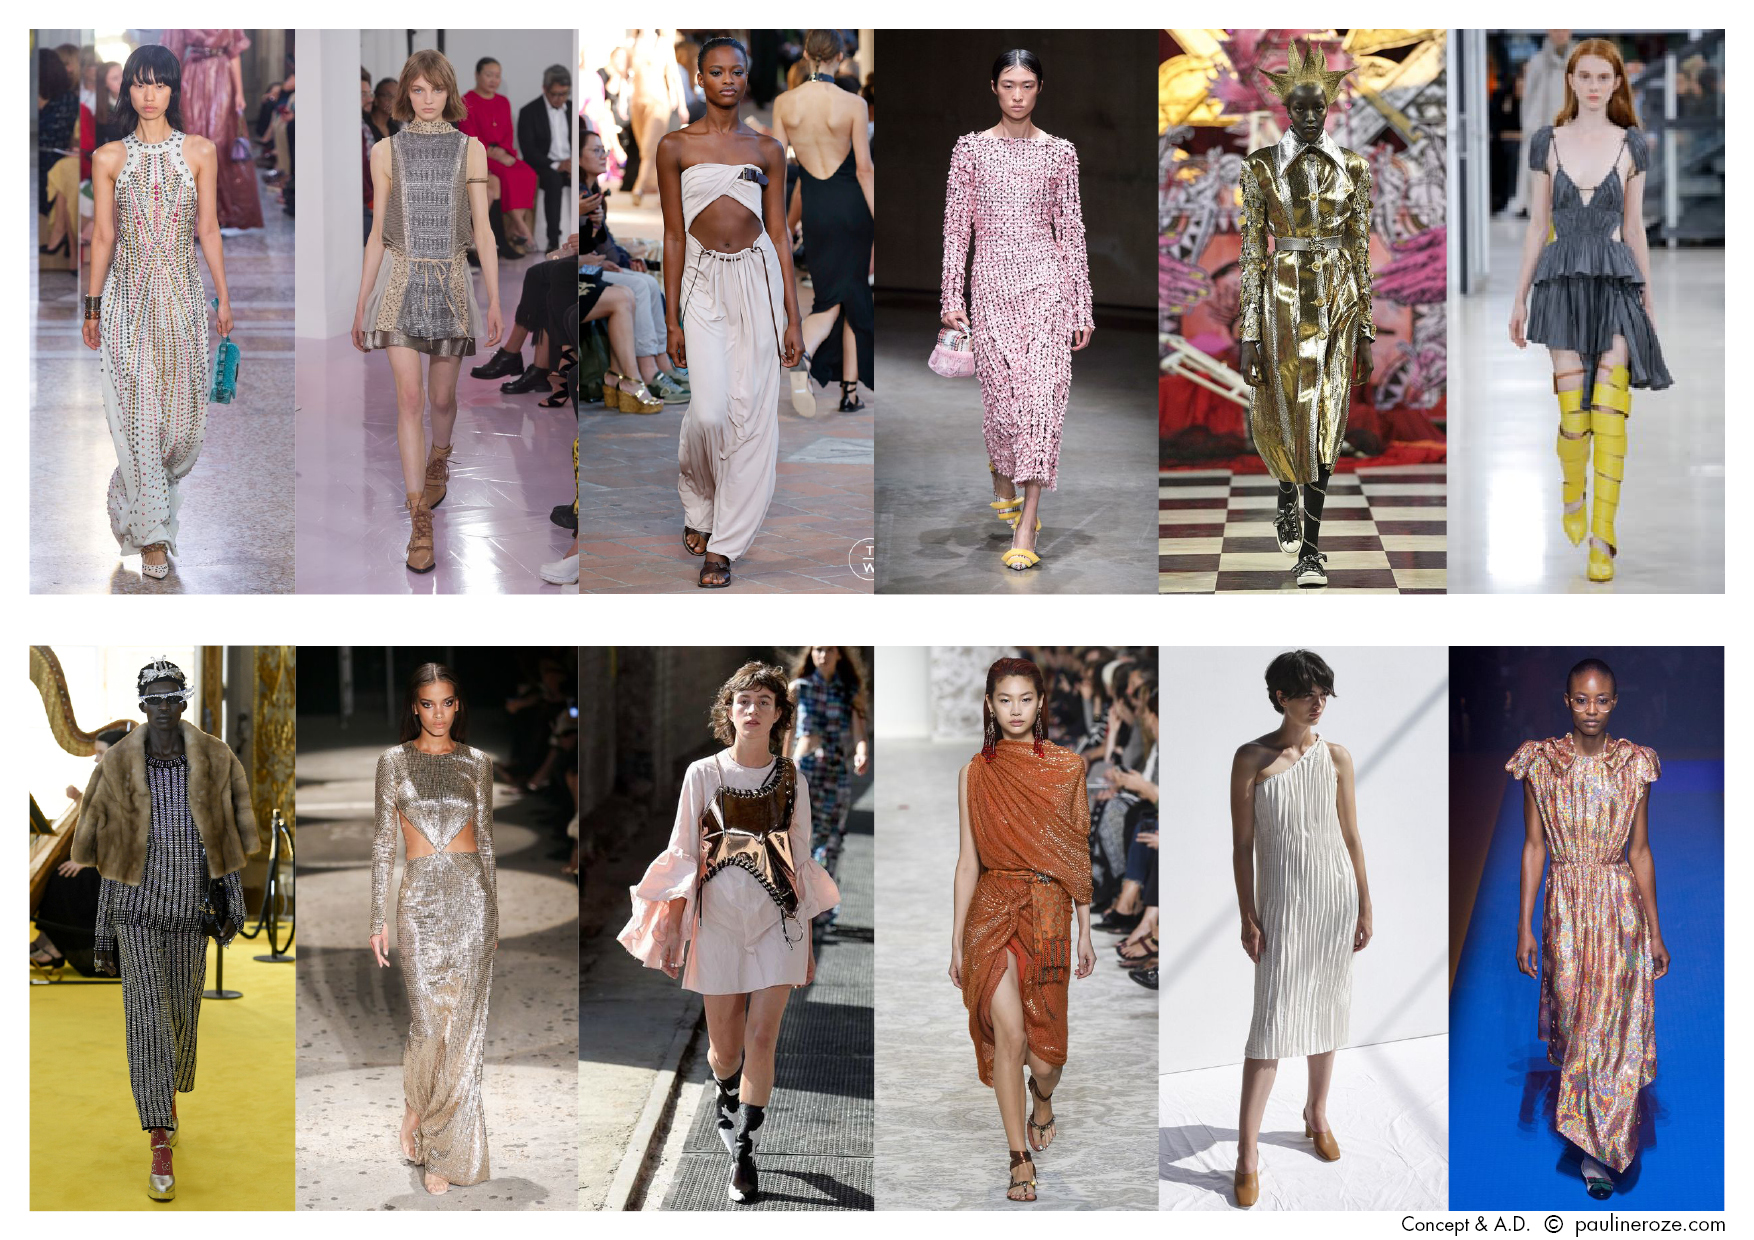 From Left to Right:  Bottega Veneta, Chloé, Alberta Ferretti, Christopher Kane, Dilara Findikoglu, Y-Project, Gucci RST, Julien MacDonald, Marques Almeida, Etro, Shaina Motte, Gucci